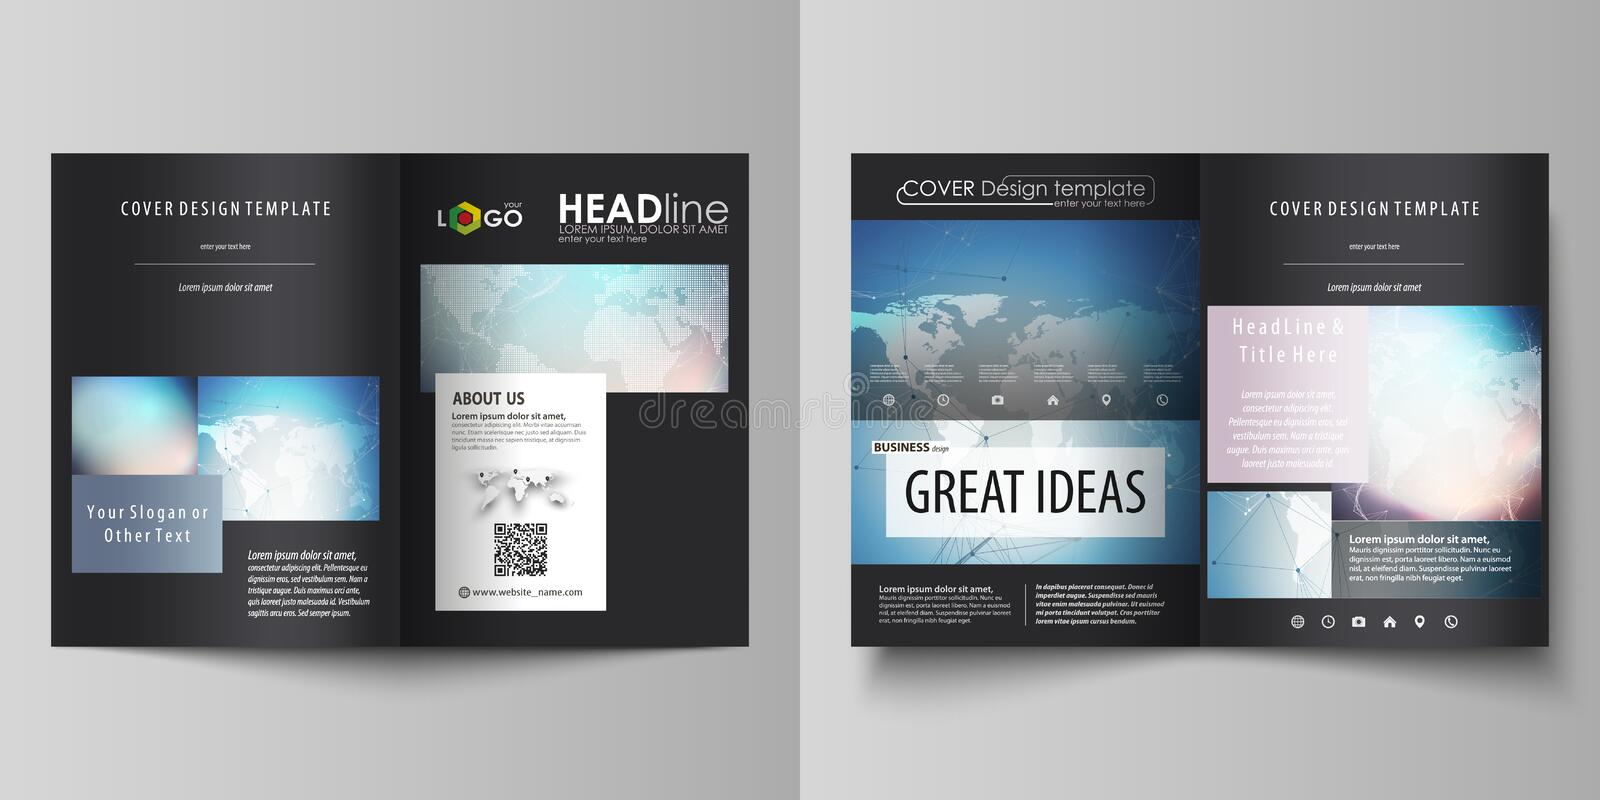 Black colored vector illustration of editable layout of two A4 format modern covers design templates for brochure, flyer vector illustration